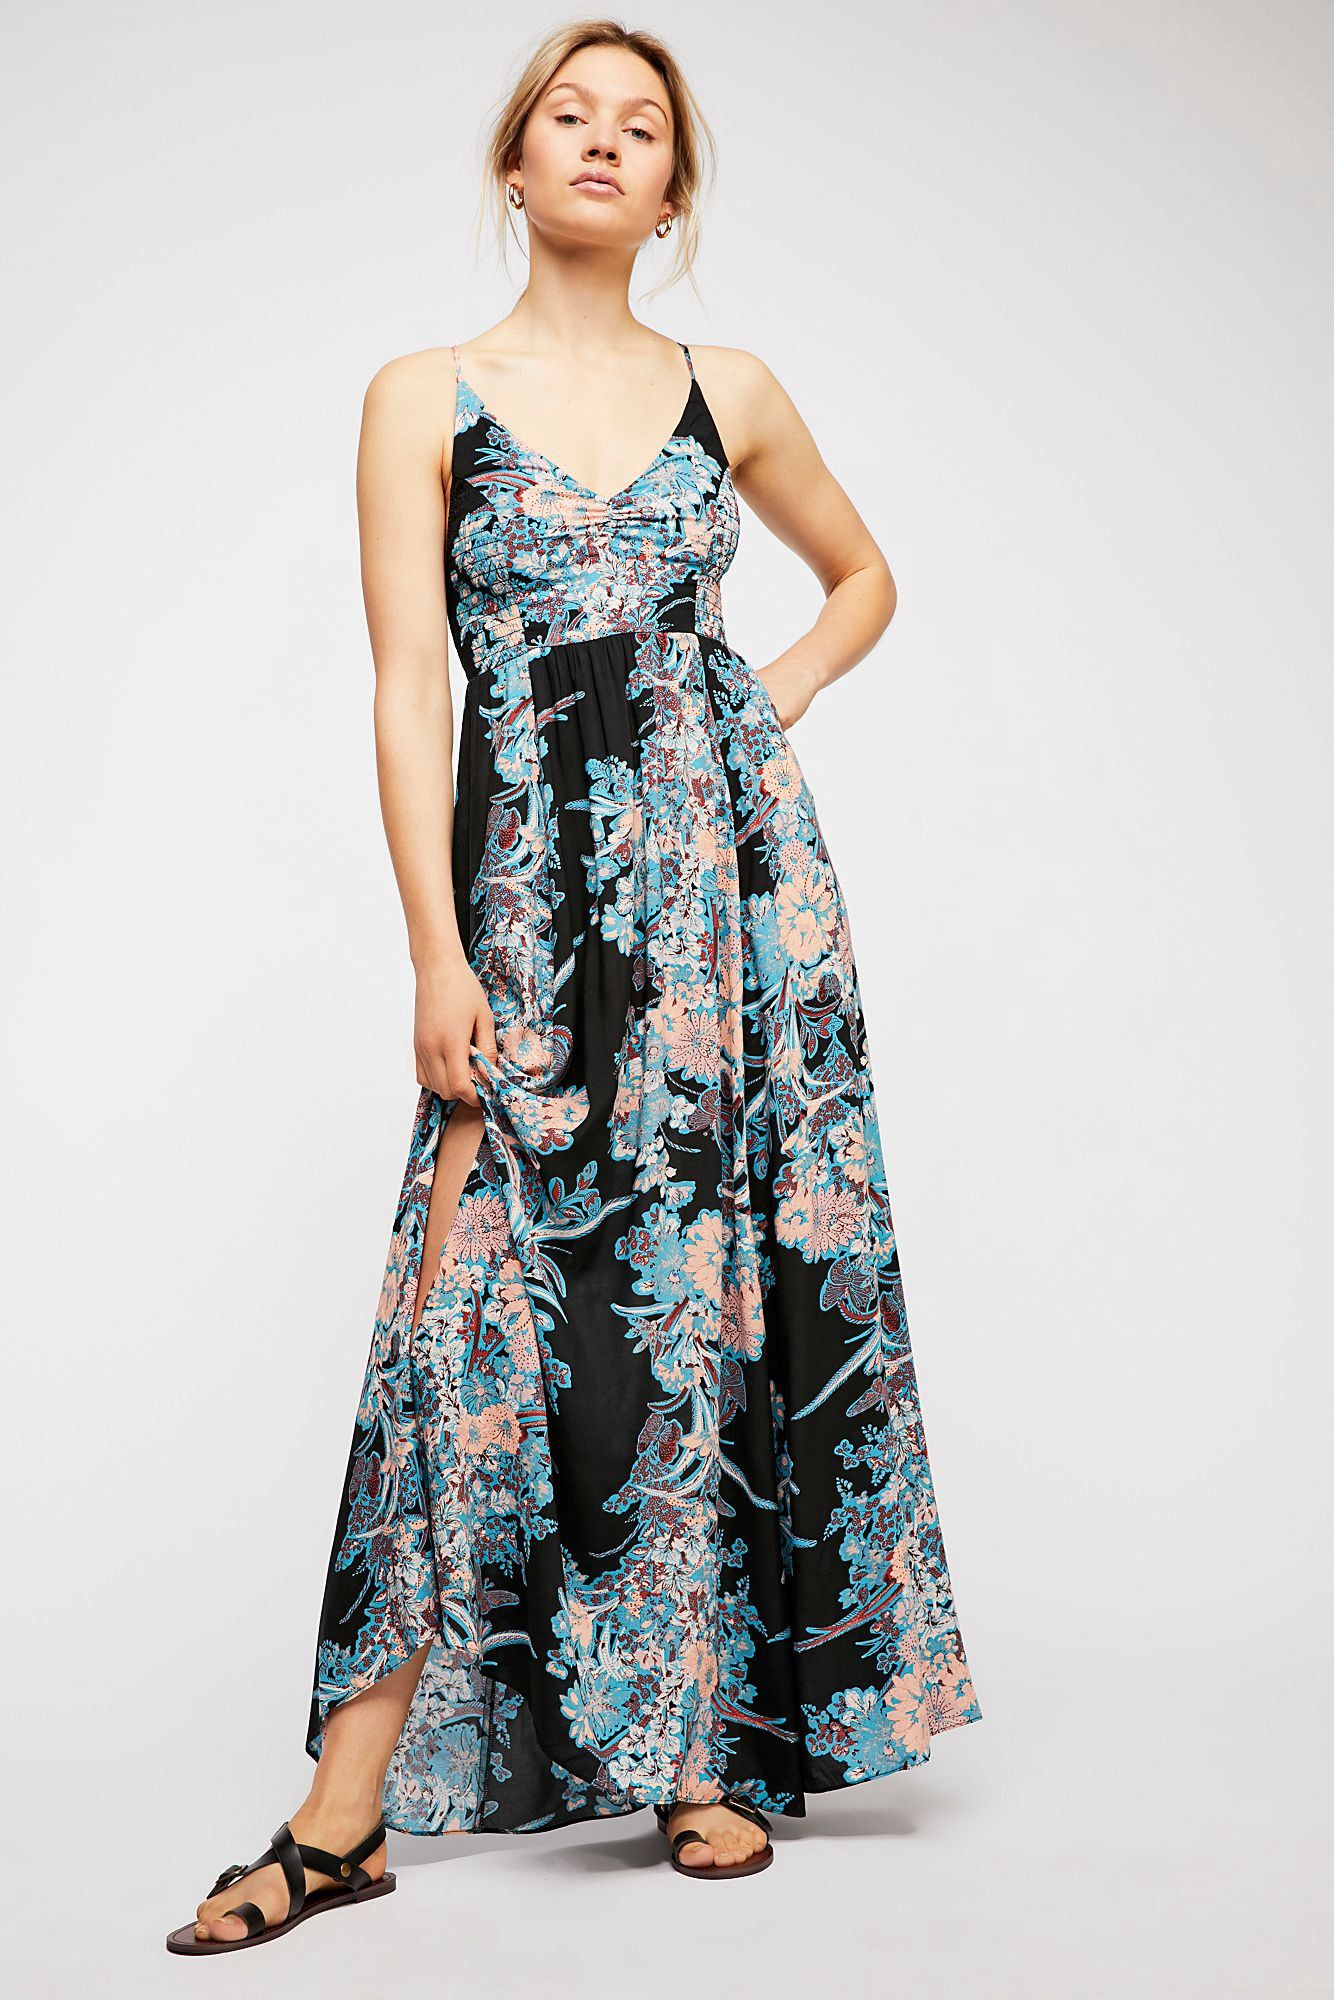 3d0e39066a82 Free People Through The Vine Printed Slip - Maize Combo L